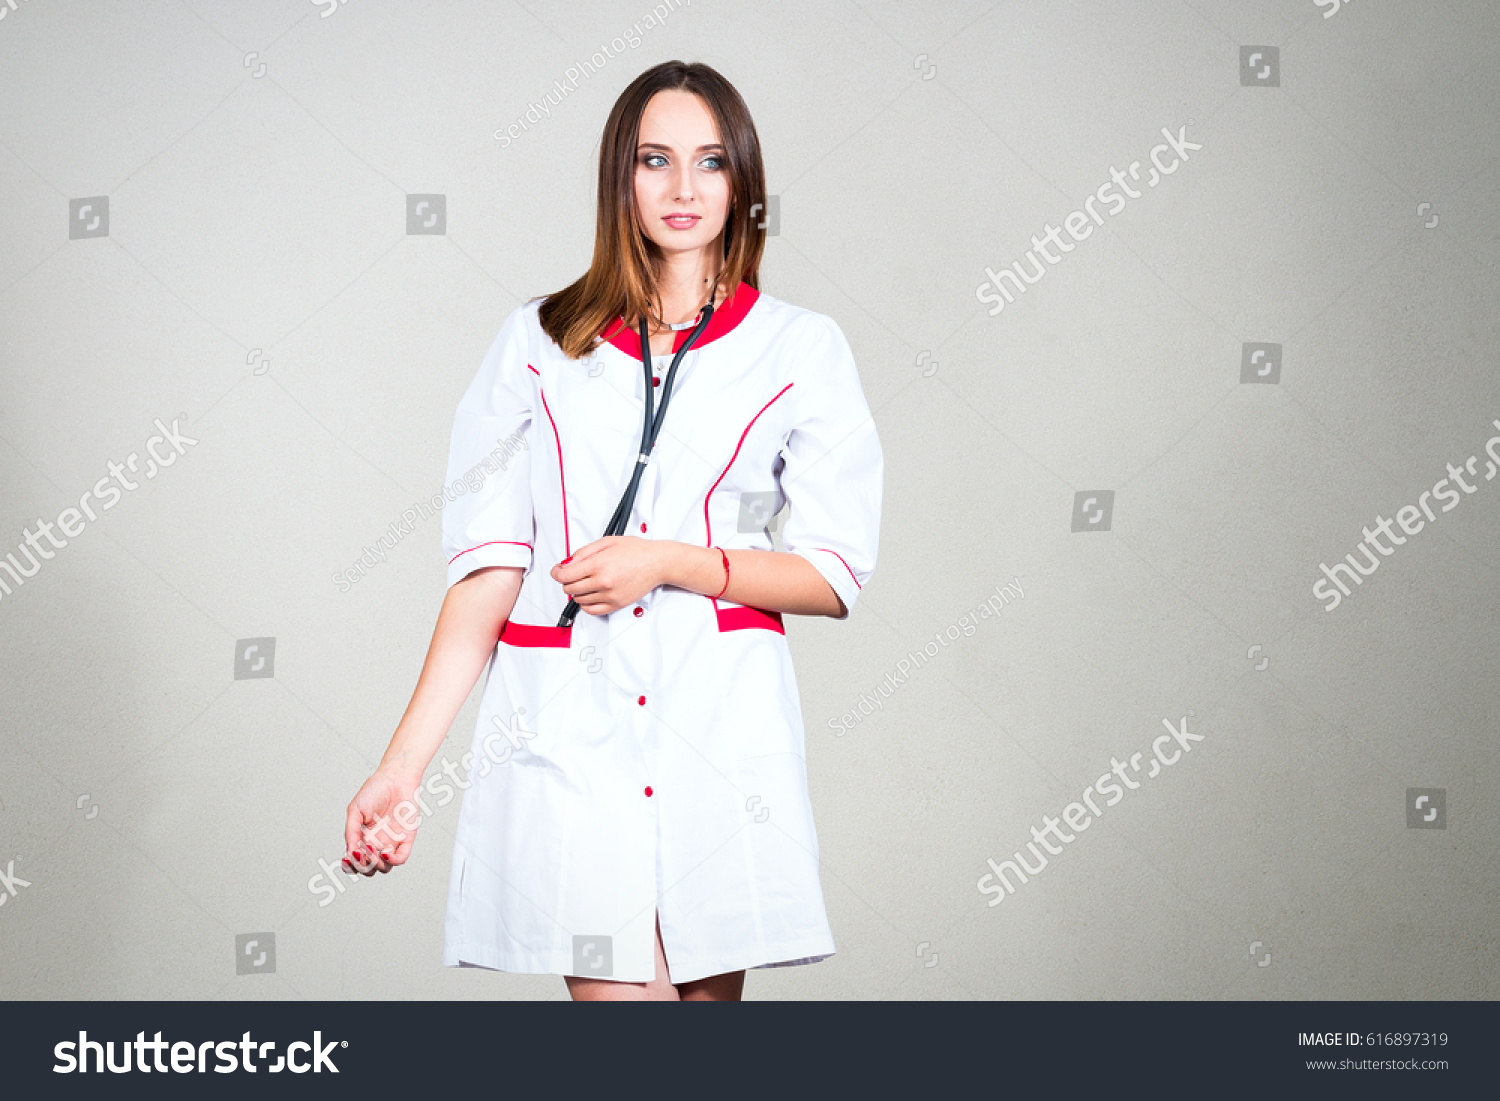 Woman Girl Nurse Doctor Medical Gown Stock Photo & Image (Royalty ...